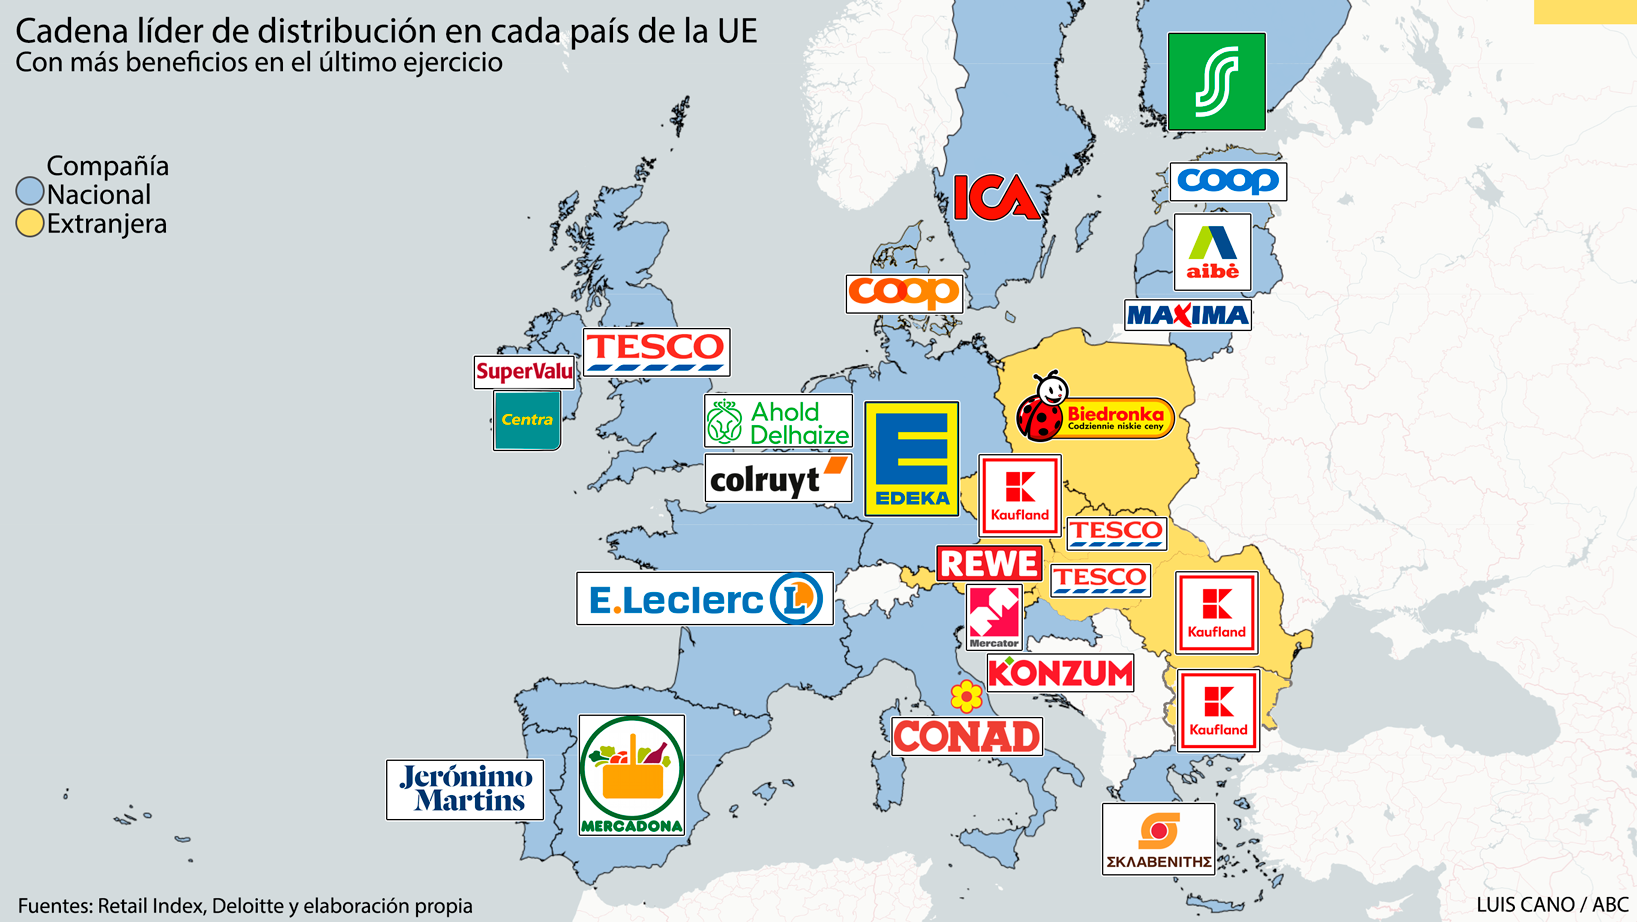 The other Mercadona of Europe: the leading supermarket